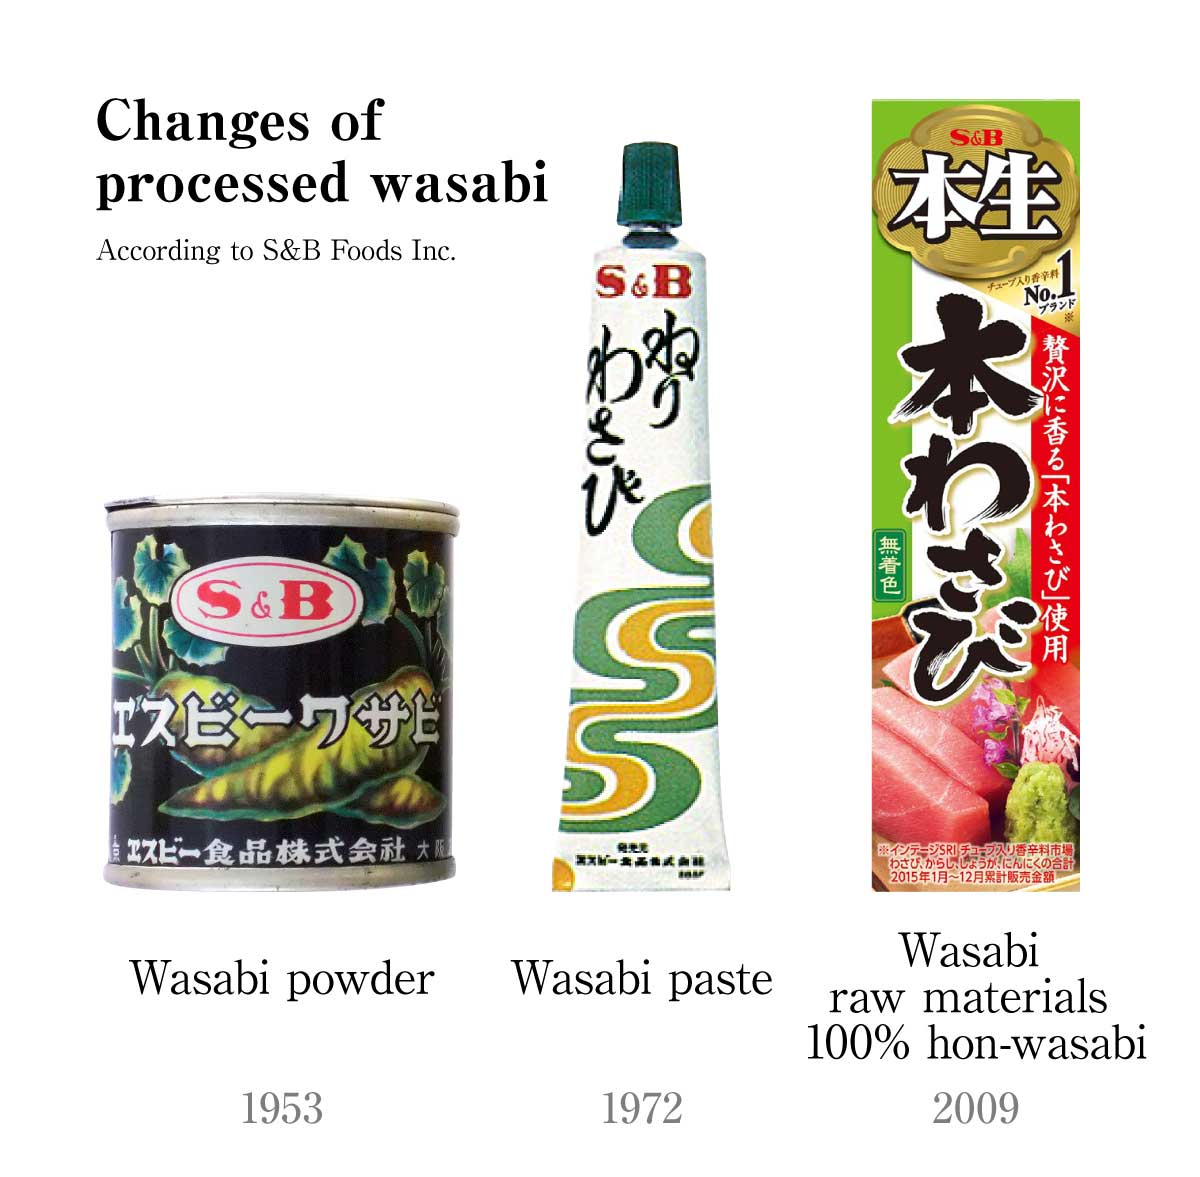 Changes of processed wasabi